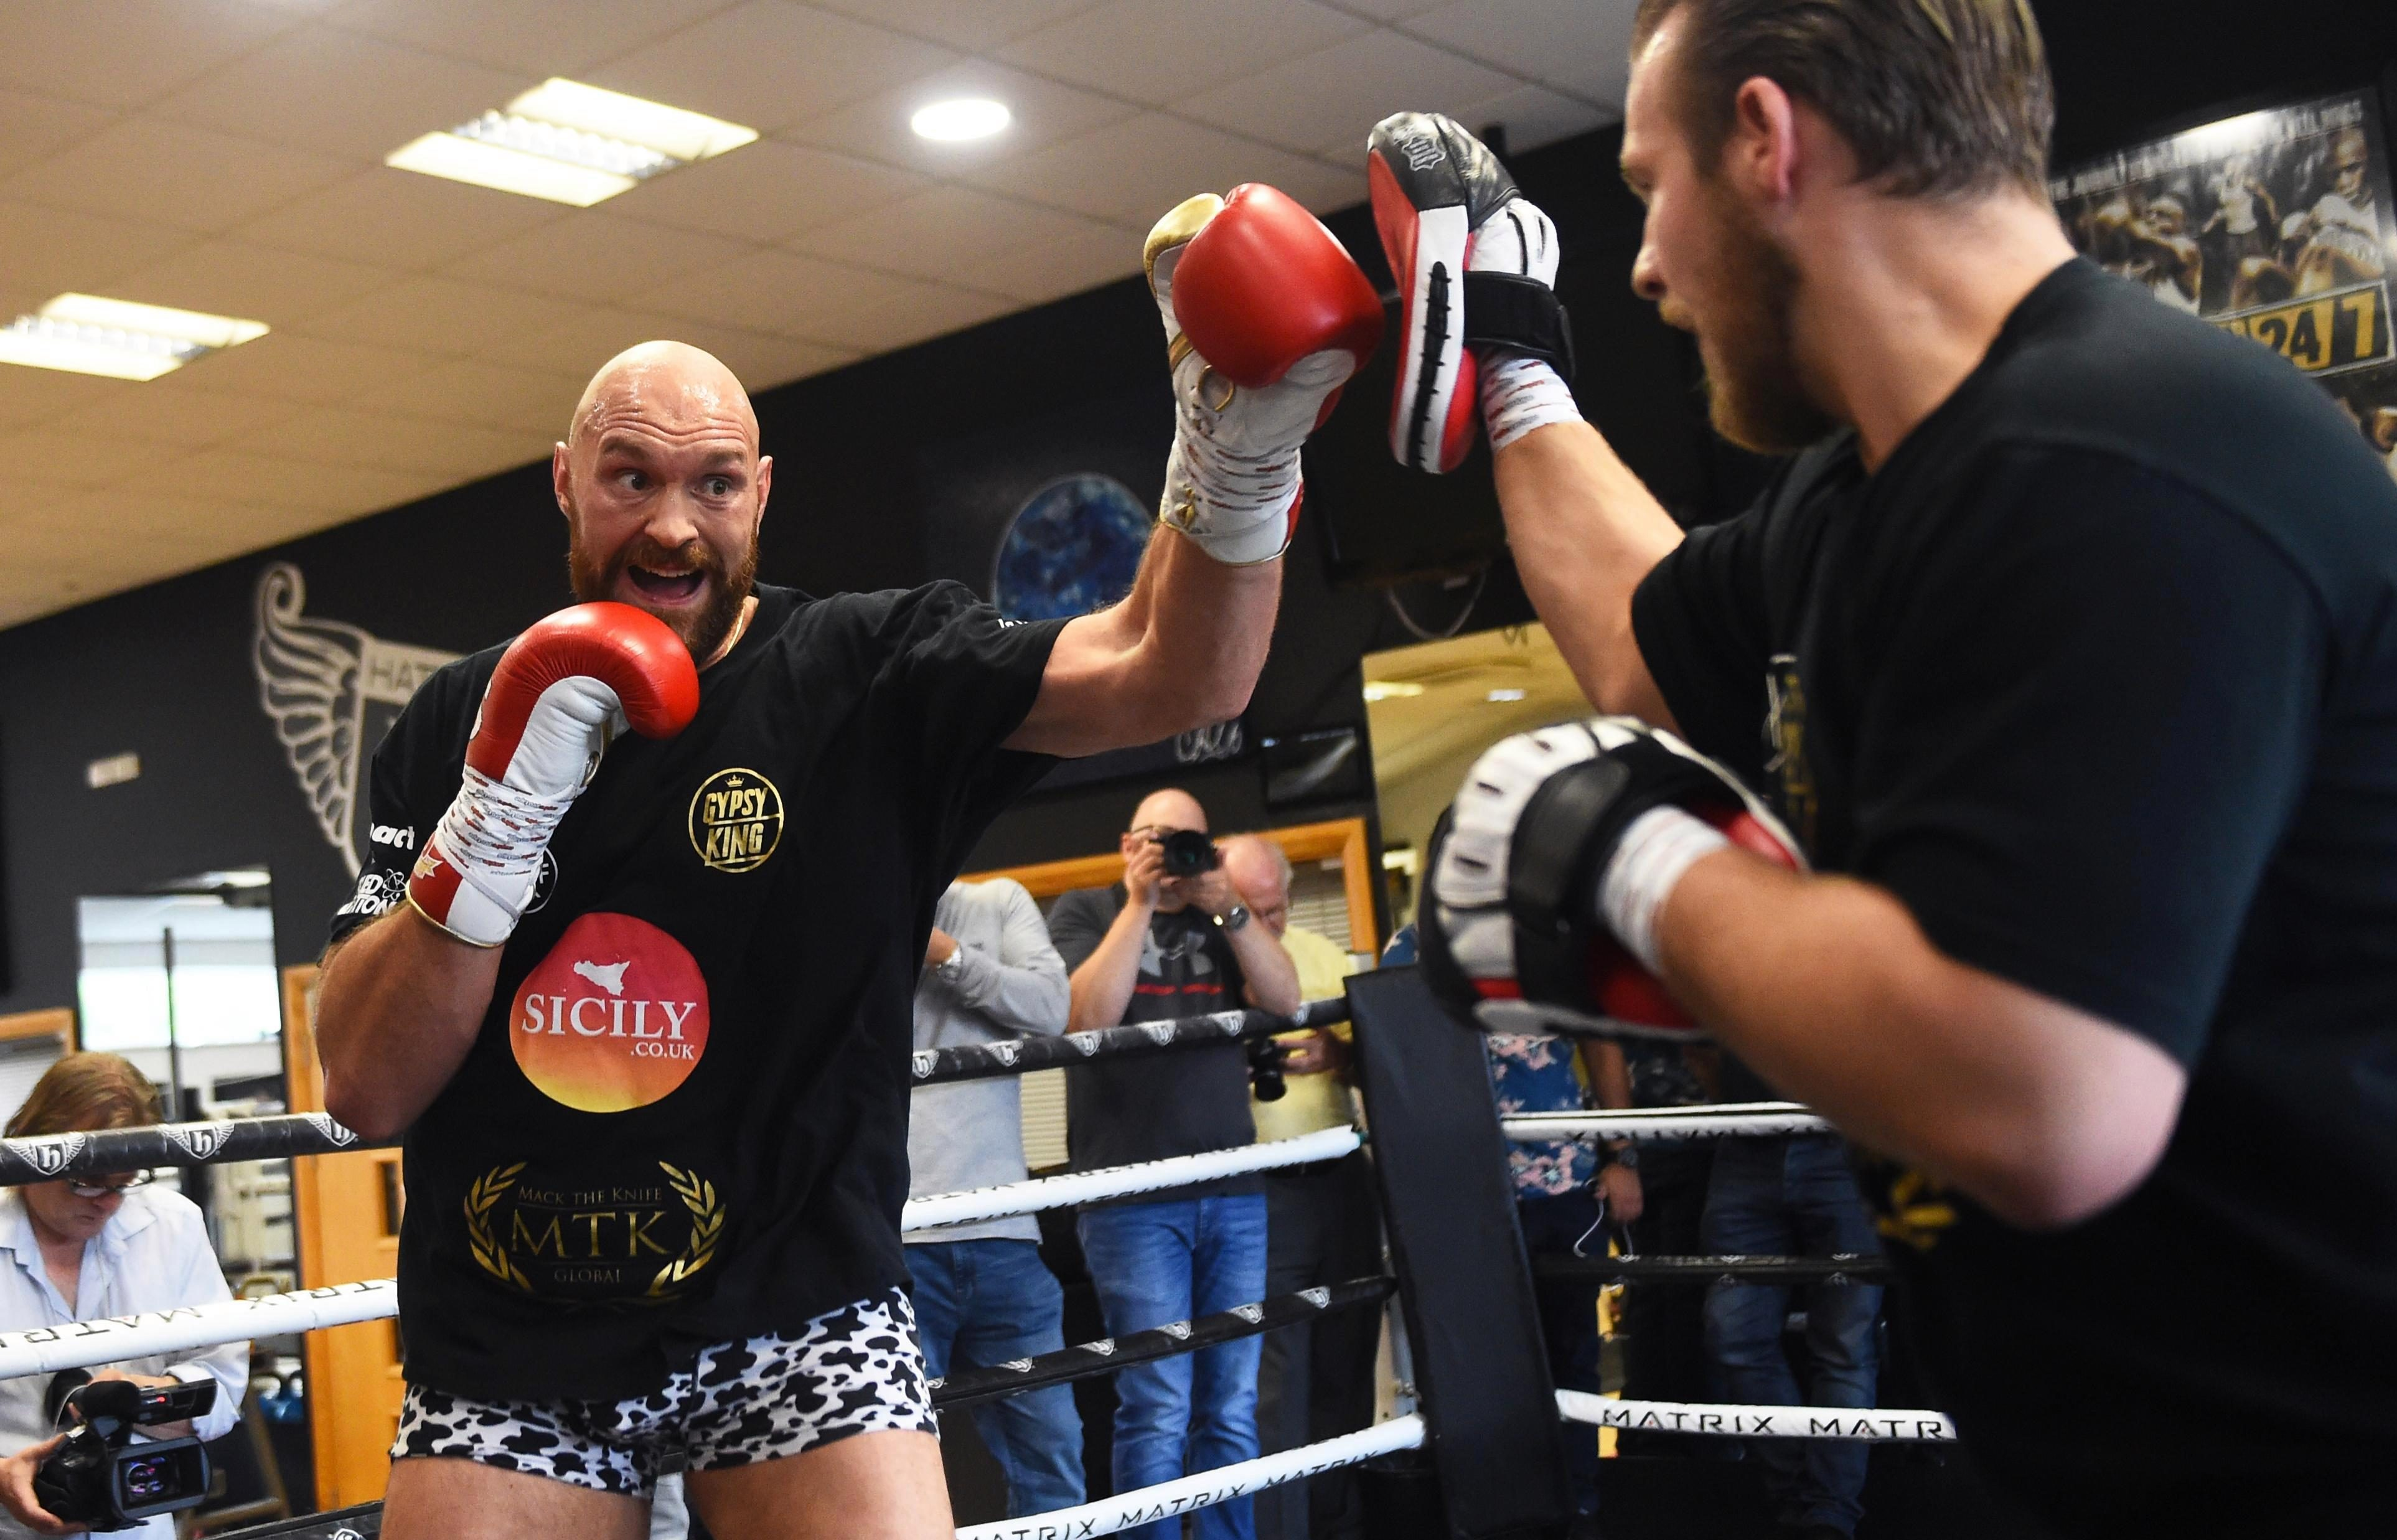 Fury has claimed he has secured a fight with WBC champion Wilder, despite recent two-and-a-year break from boxing